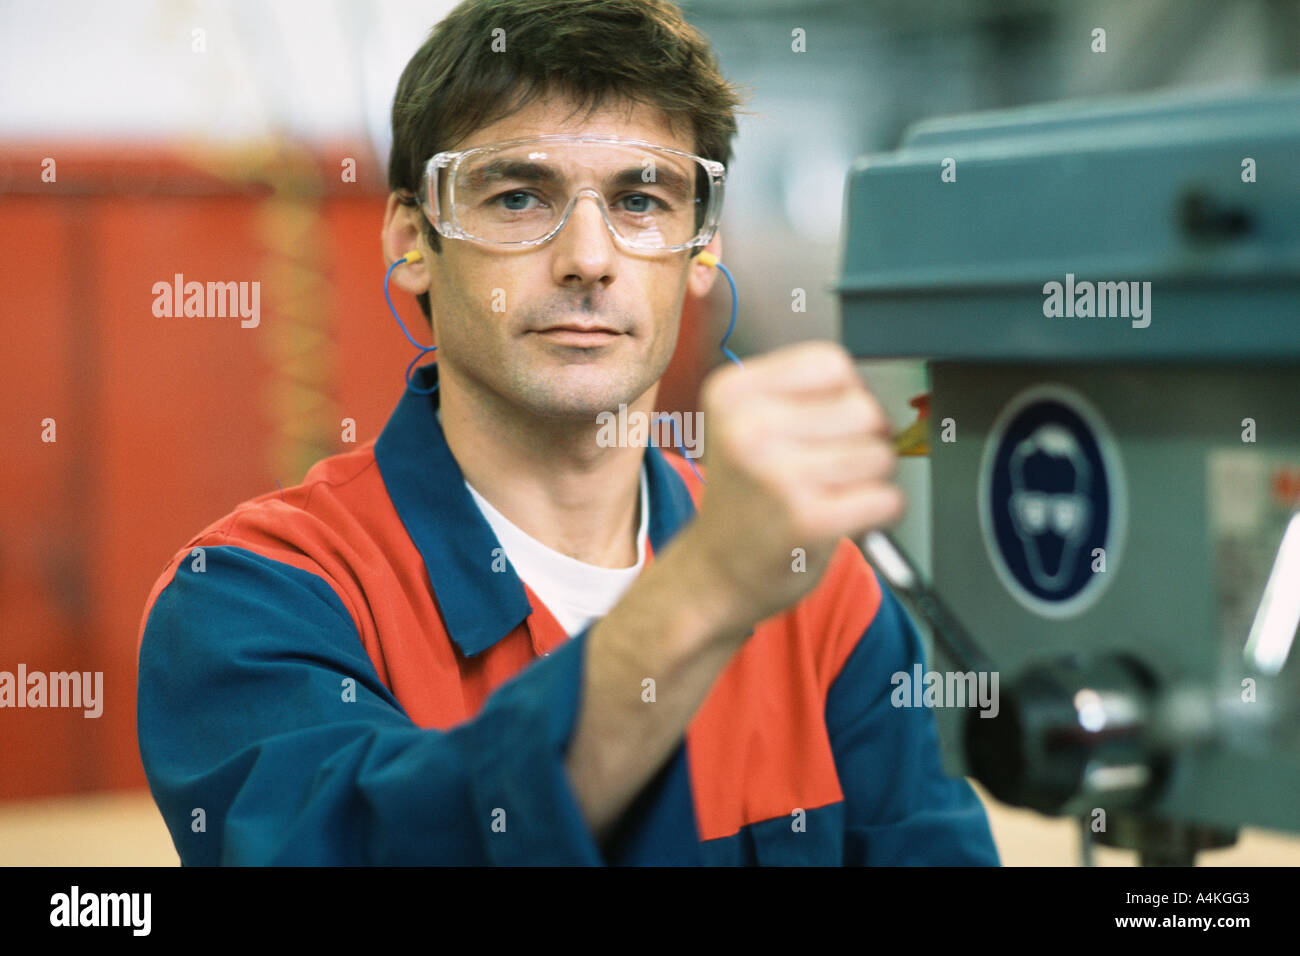 Manual worker - Stock Image